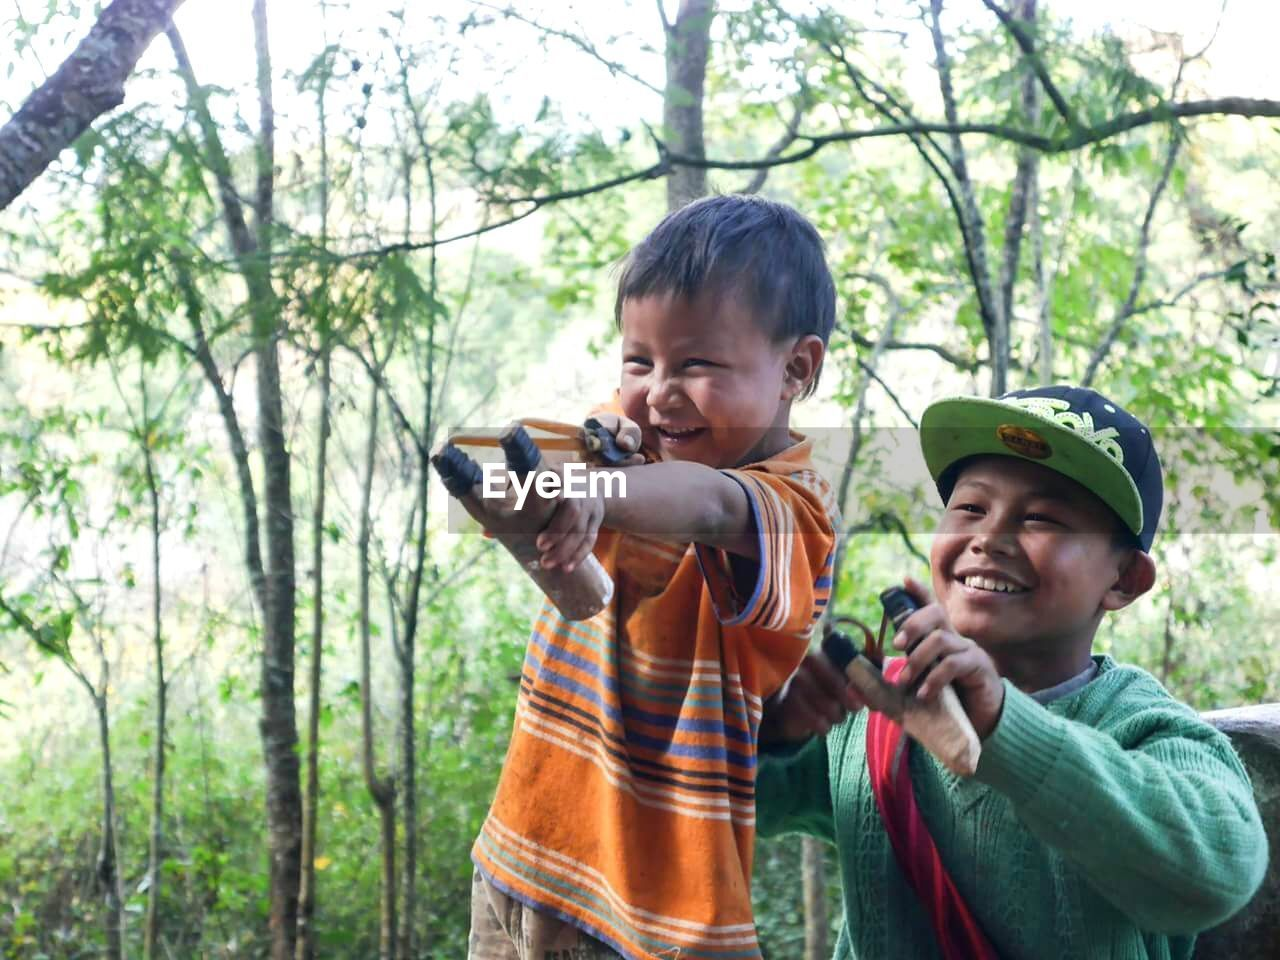 child, boys, childhood, smiling, tree, males, two people, cheerful, family, happiness, forest, fun, son, enjoyment, leisure activity, father, nature, day, bonding, togetherness, outdoors, people, adult, standing, learning, men, rural scene, helmet, camouflage clothing